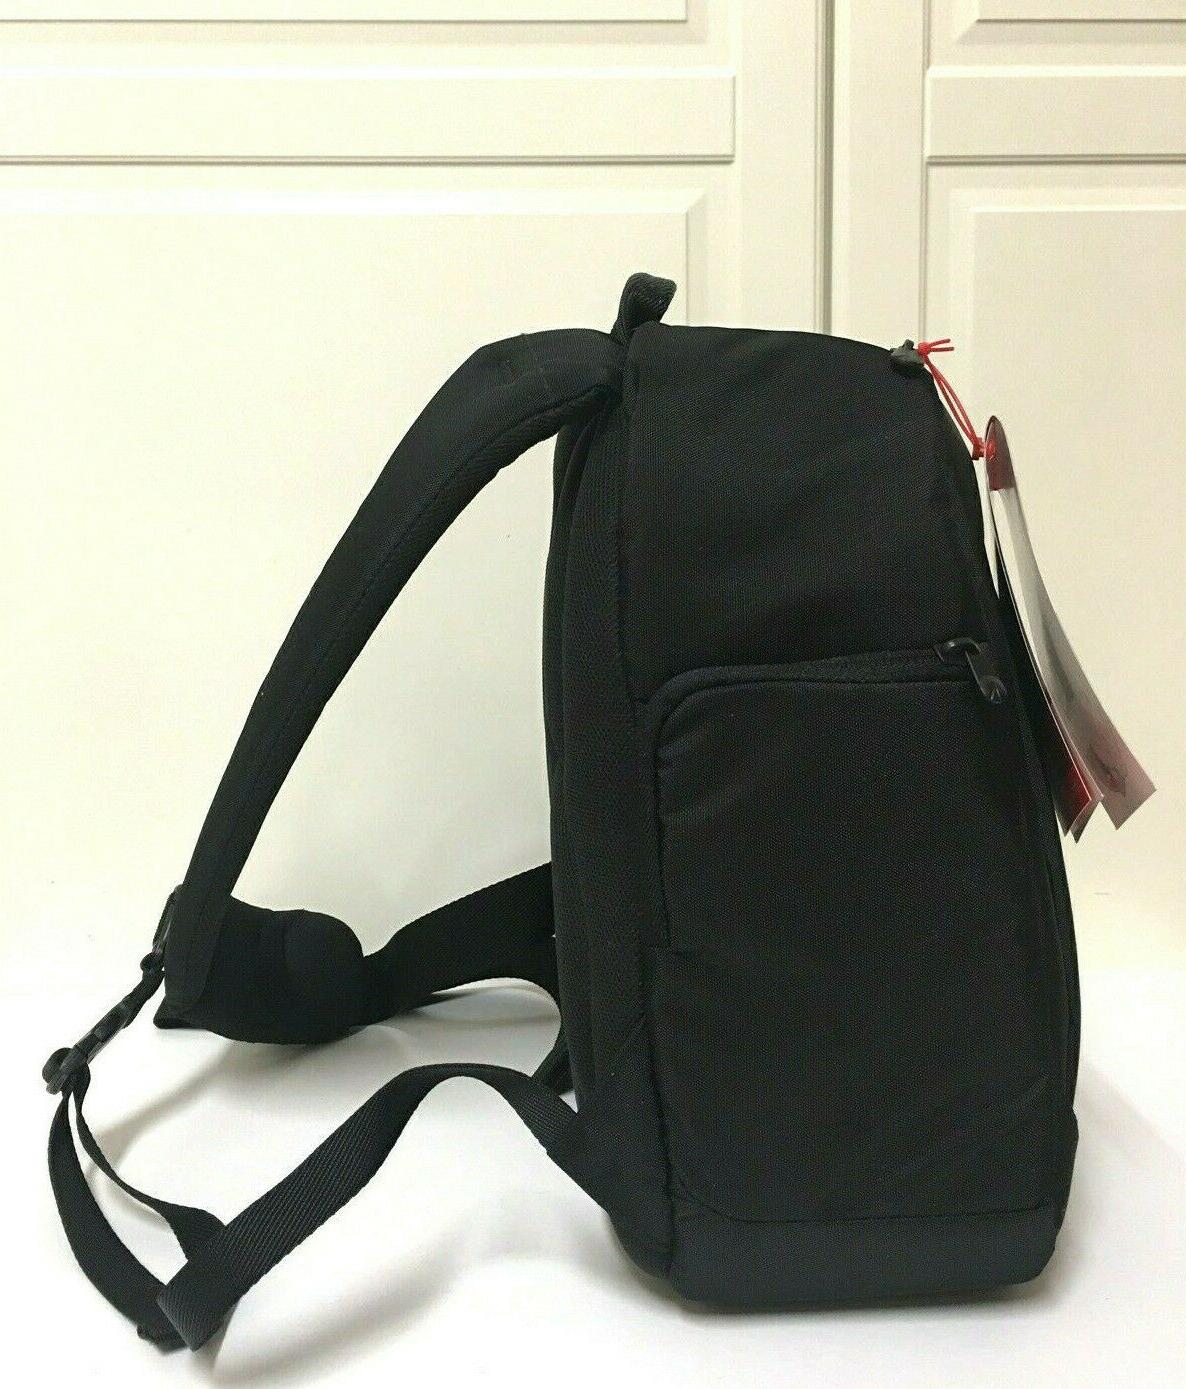 Manfrotto Stile MB Carrying Tripod Black Water - Strap, Backpack Strap 14.2 Width